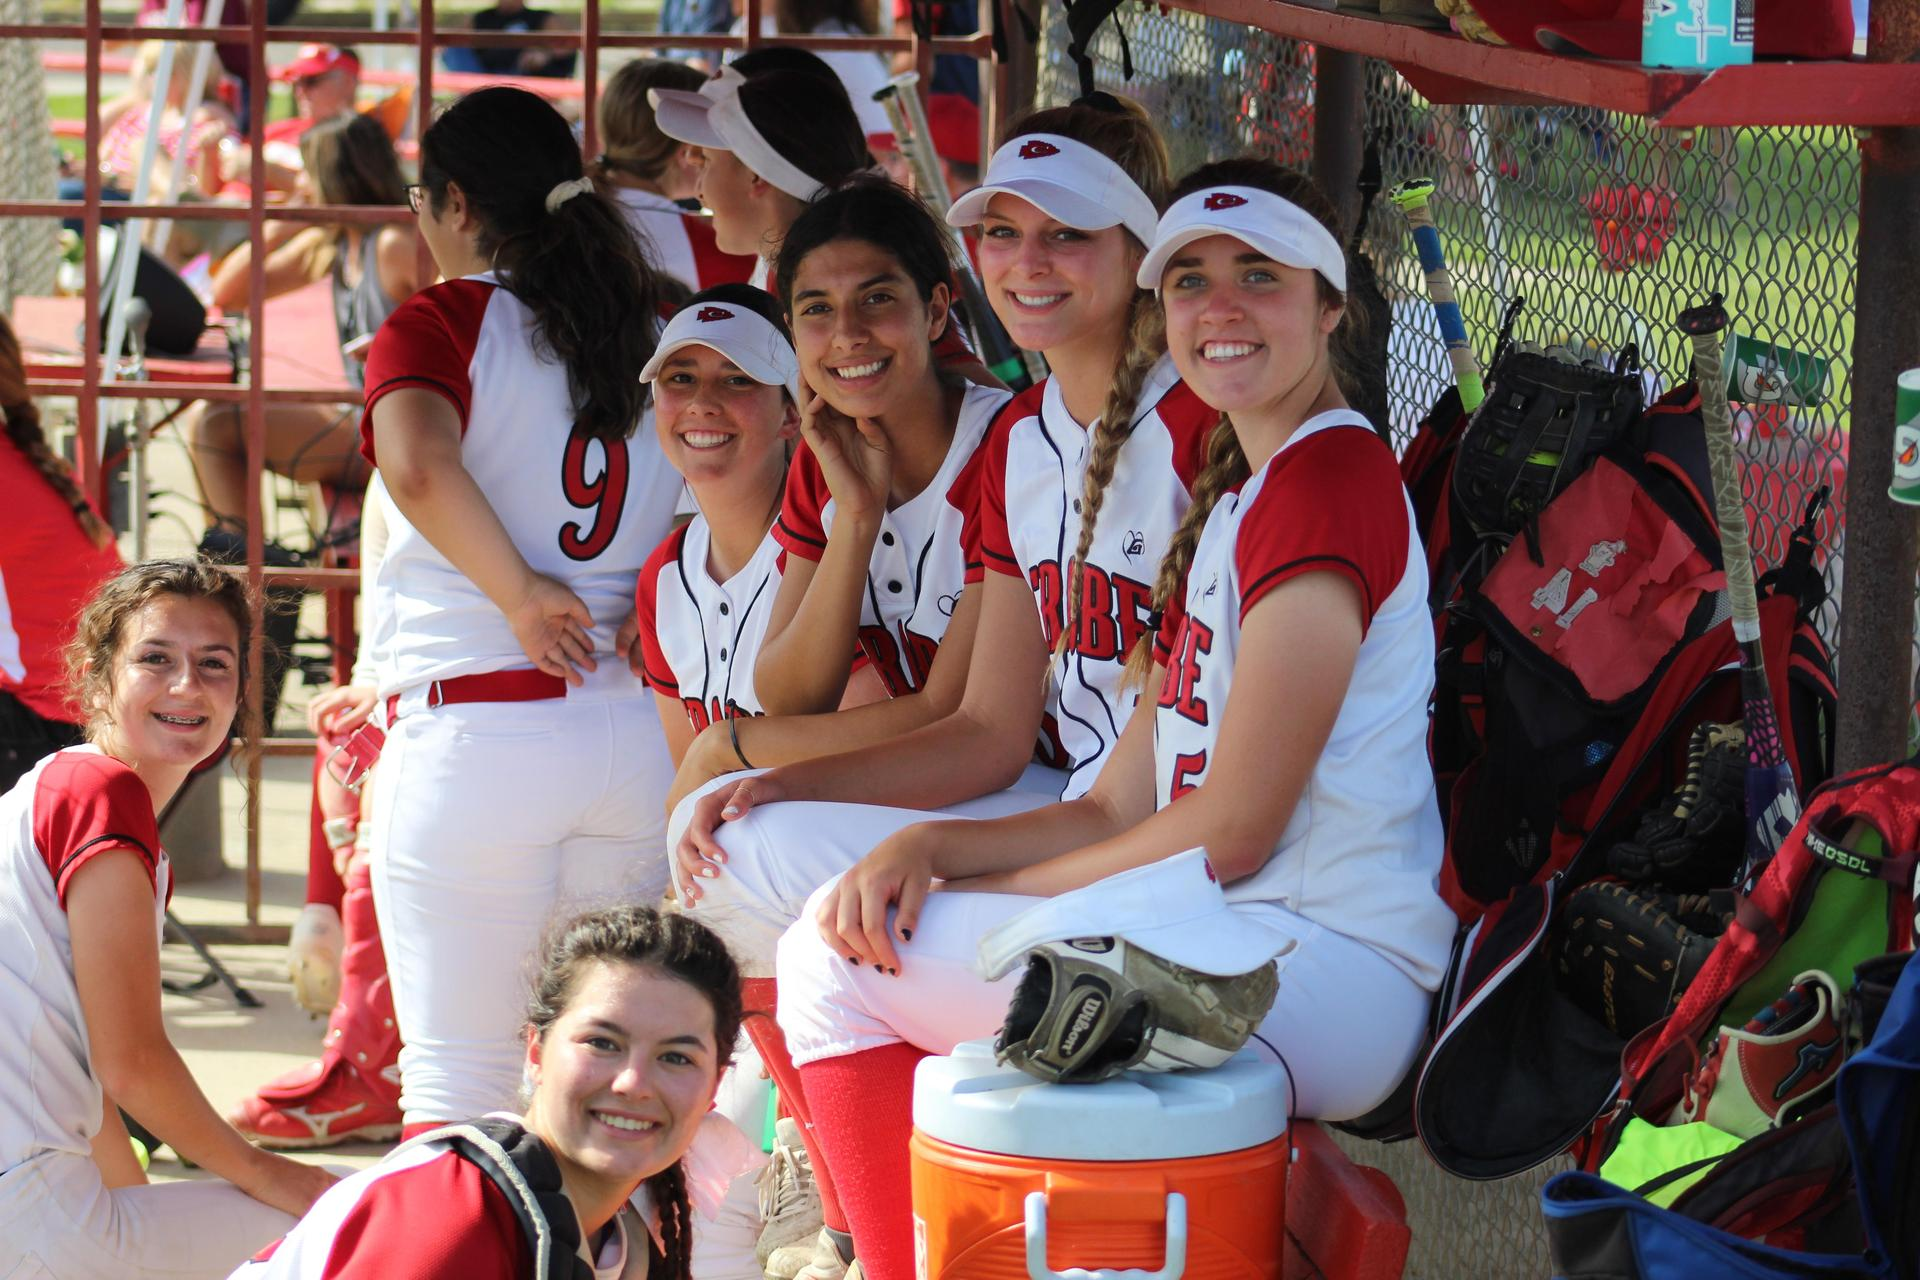 Jana Pope, Morgan Sewell, Shelby Williams, Priscilla Foster, Kinsley Vlot and Adriana Felsinger in the dugout